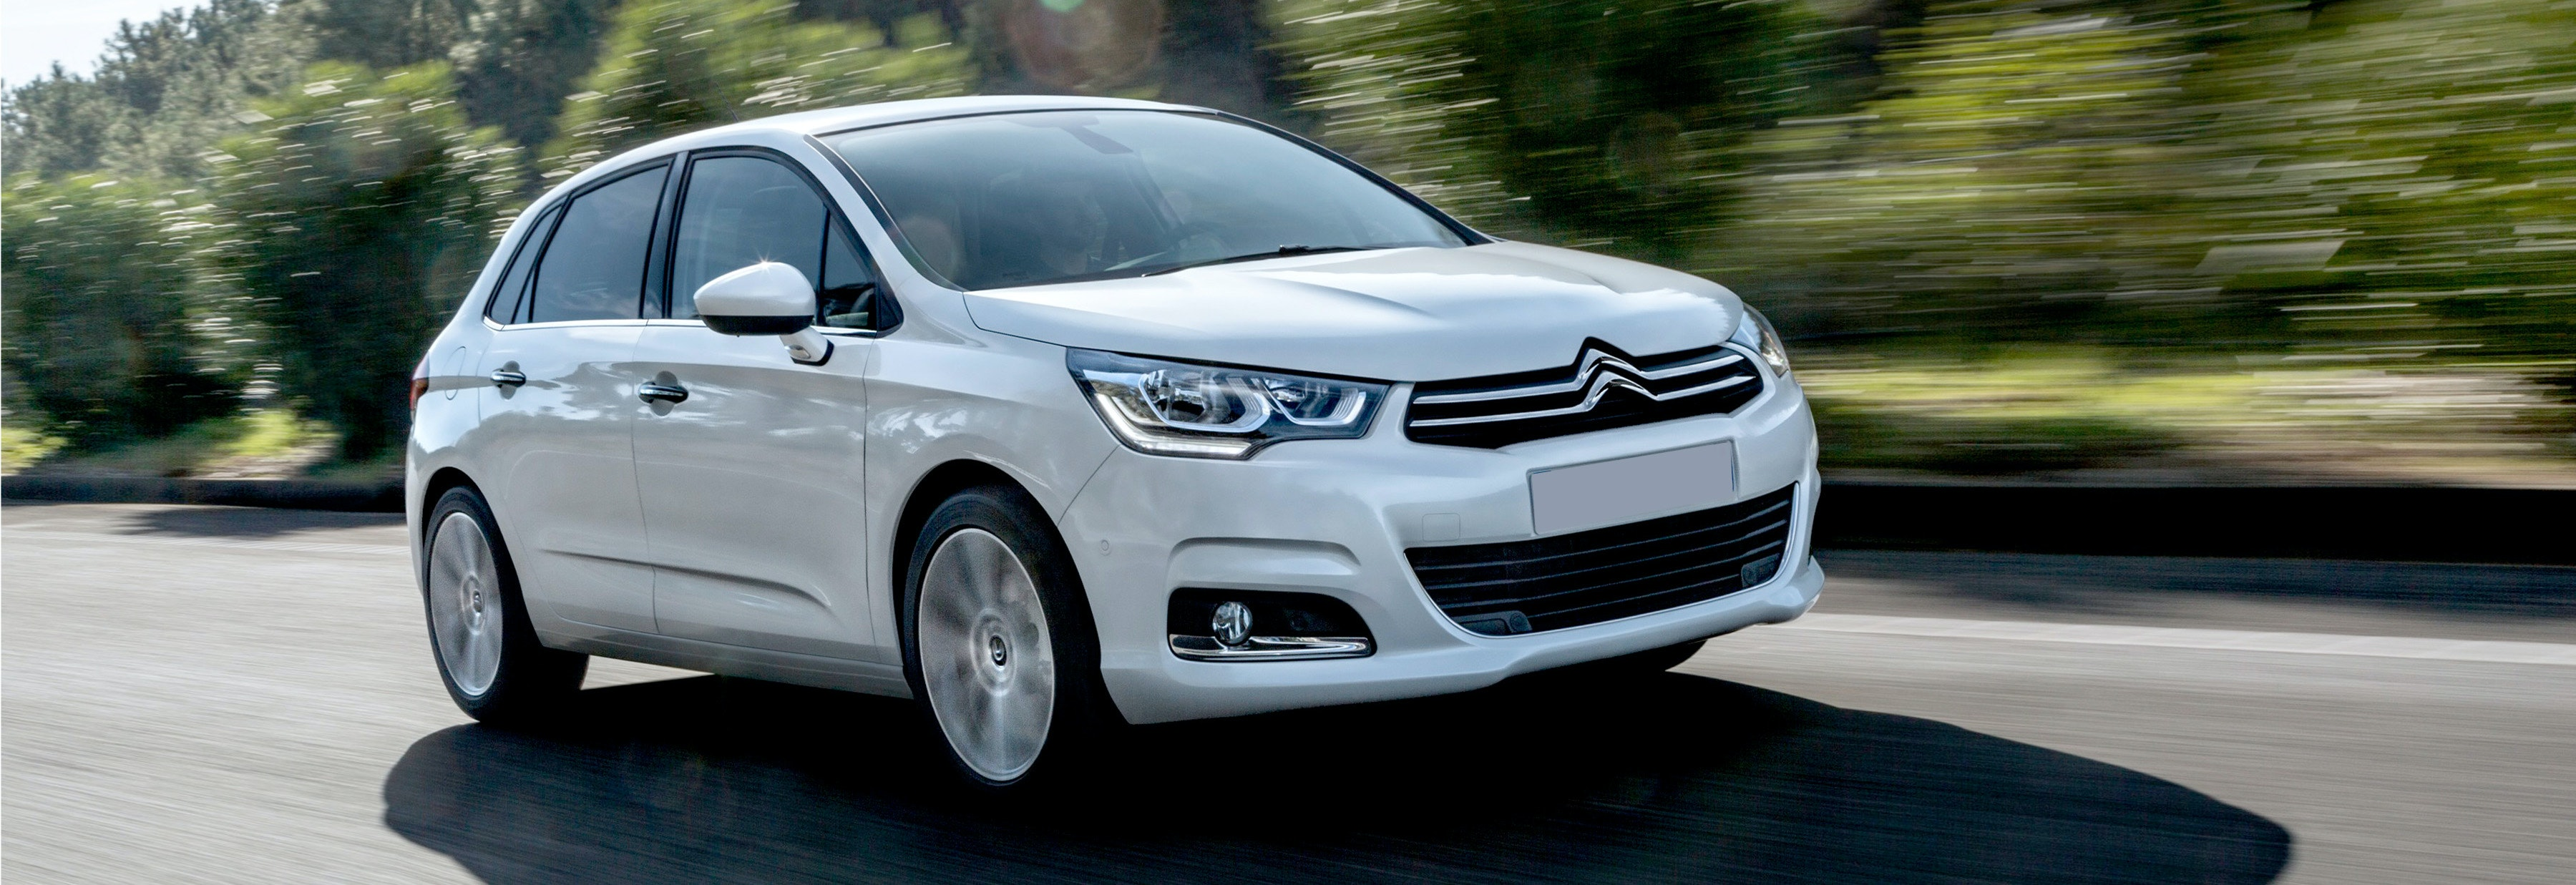 2018 citroen c4 white driving front